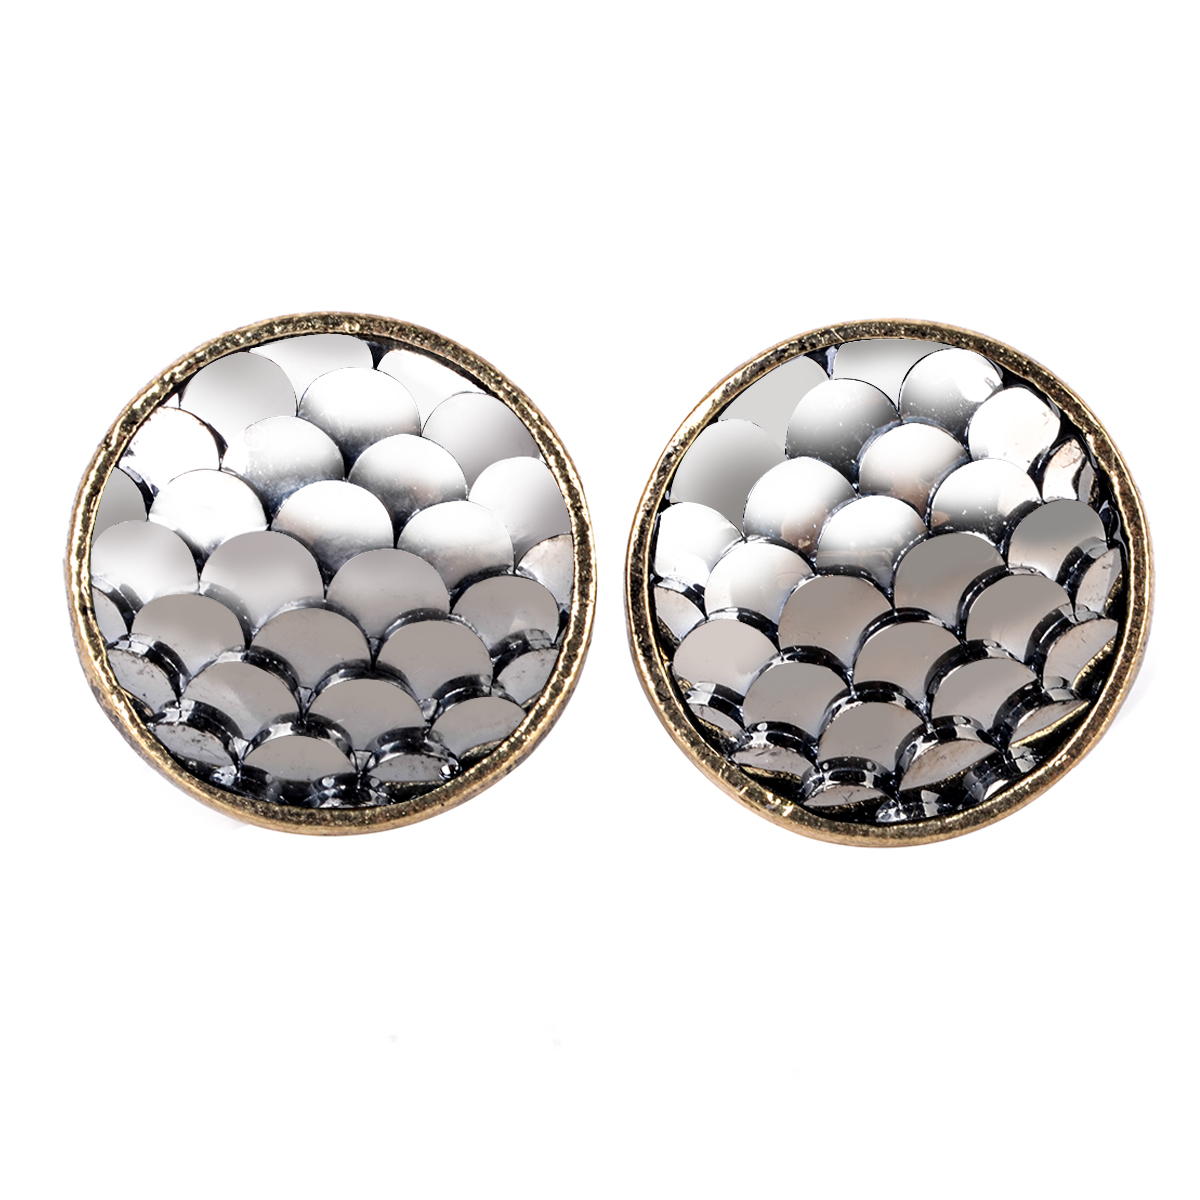 Charming Mermaid Fish Scale Ear Stud Earrings Shard Round Colorful Beads Earring For Woman Trendy Jewelry